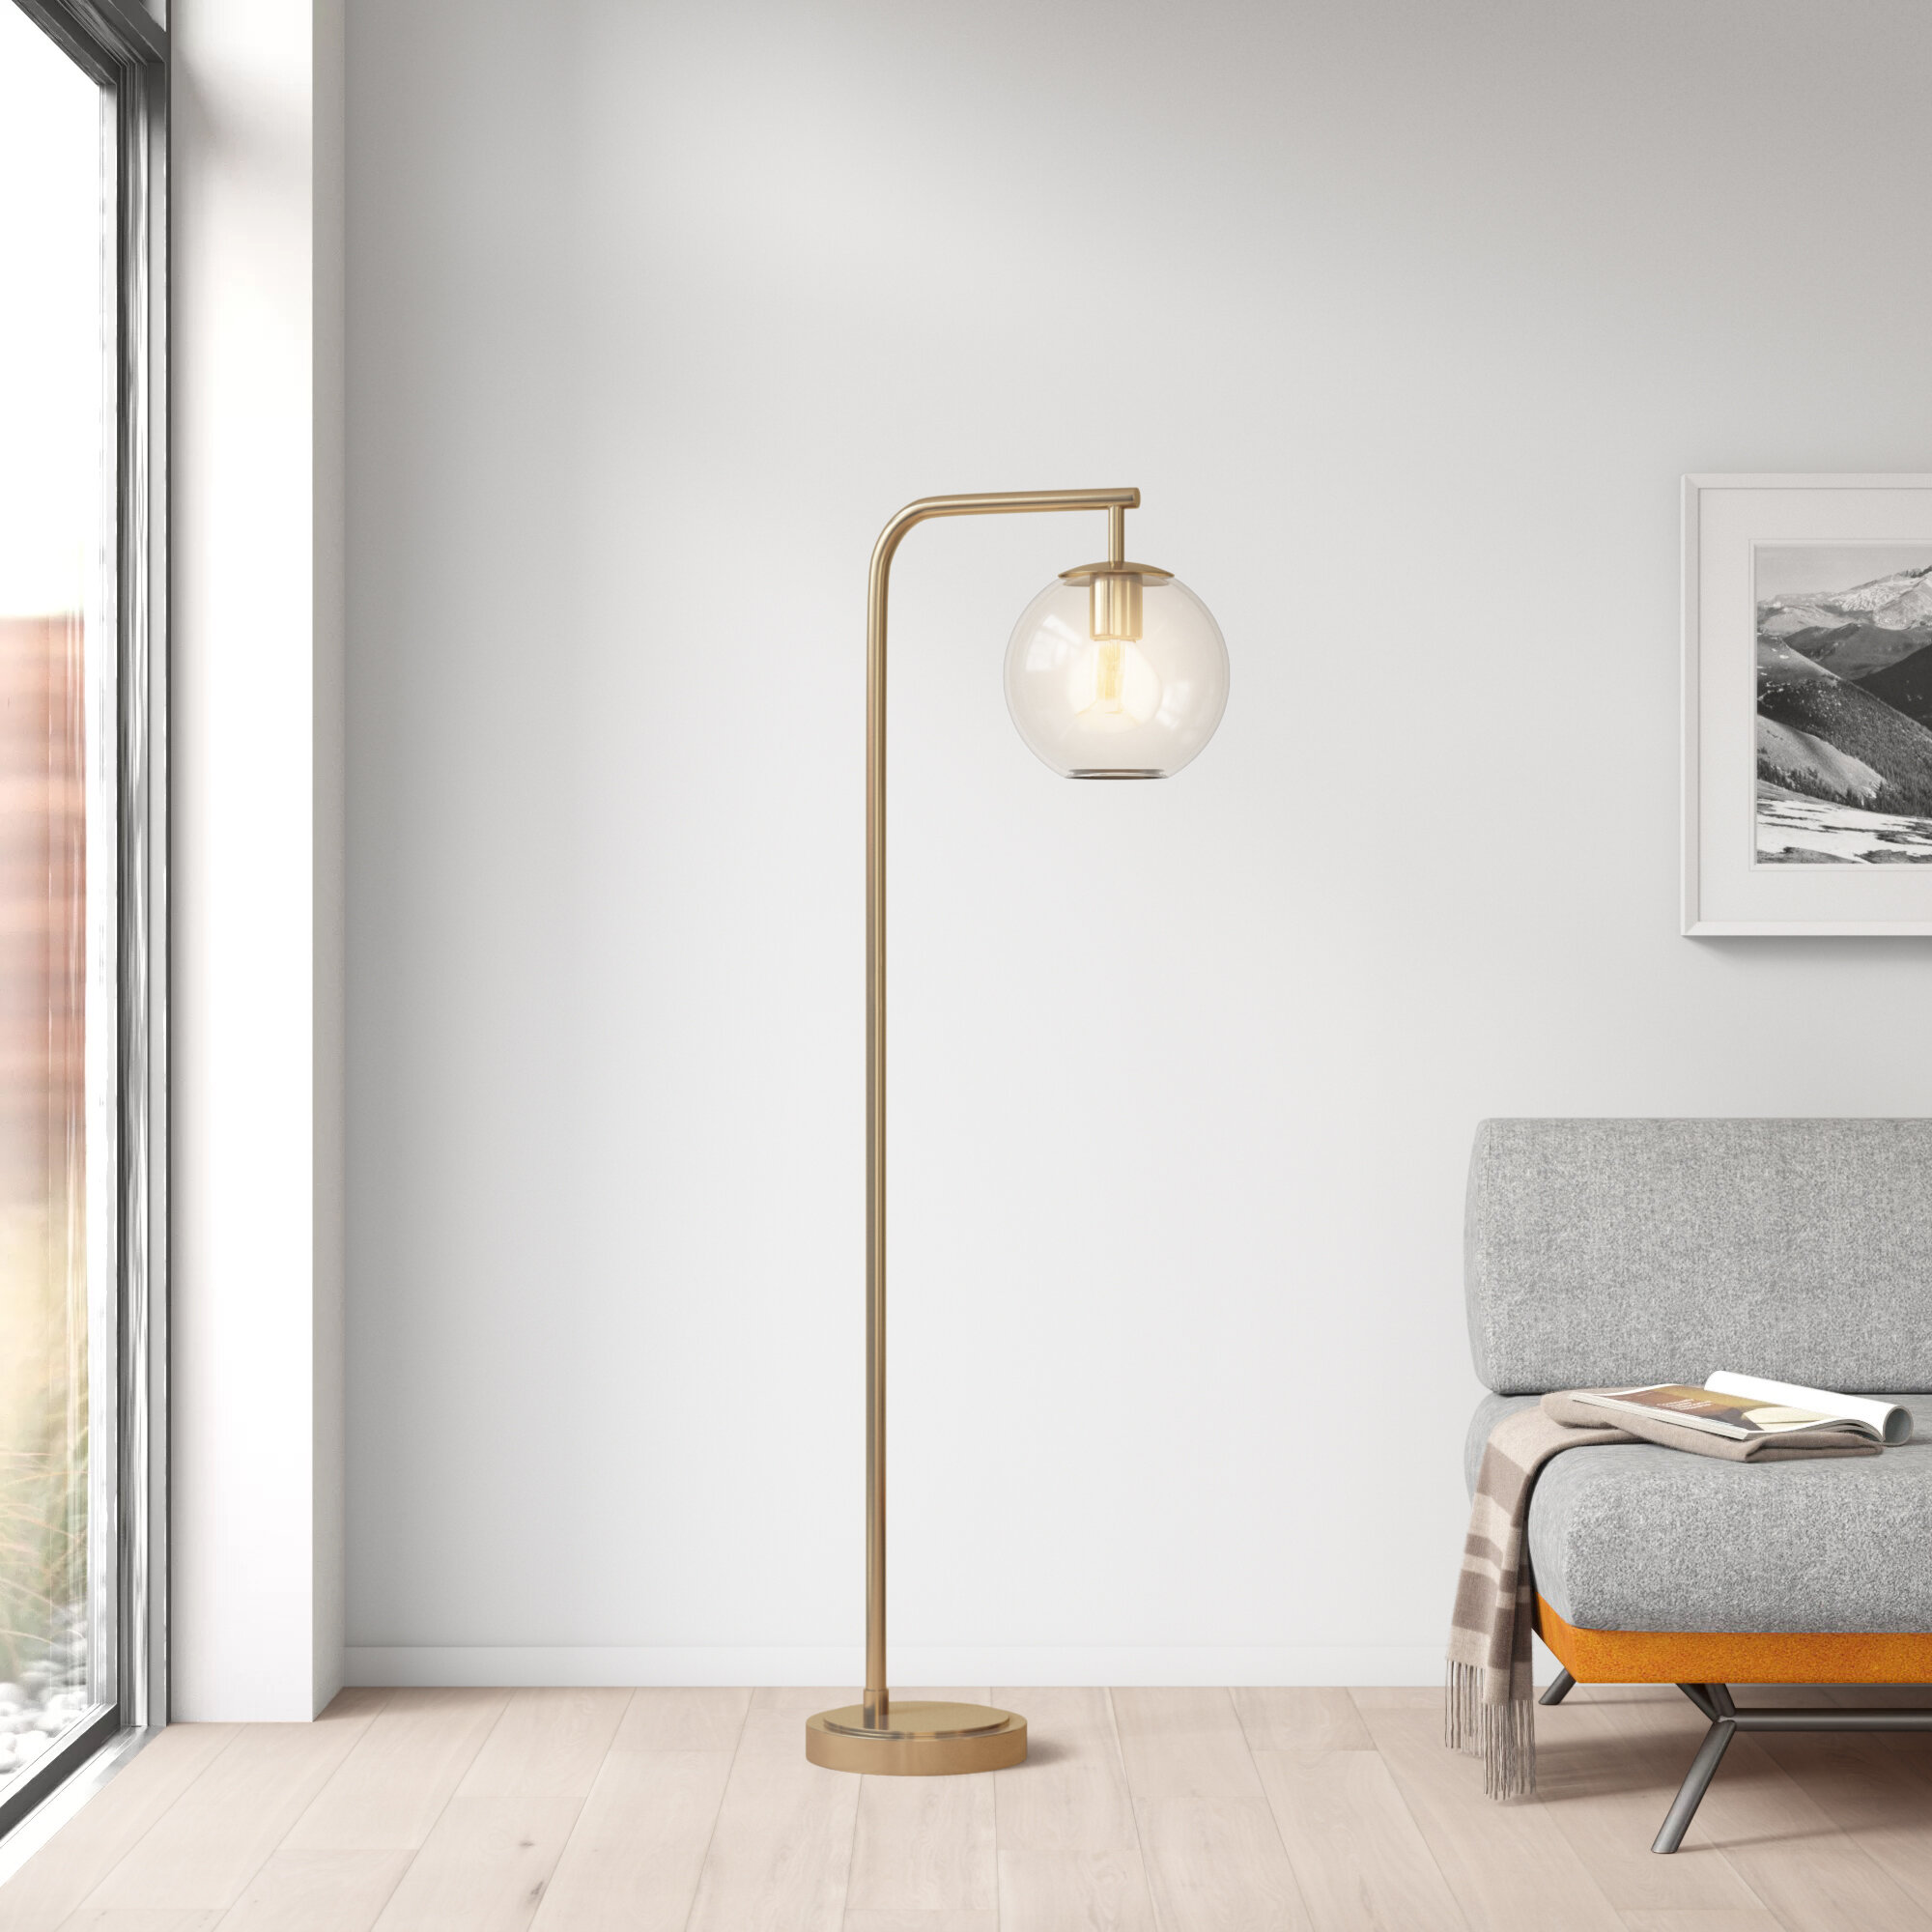 Safe and newly designed modern arch floor lamp